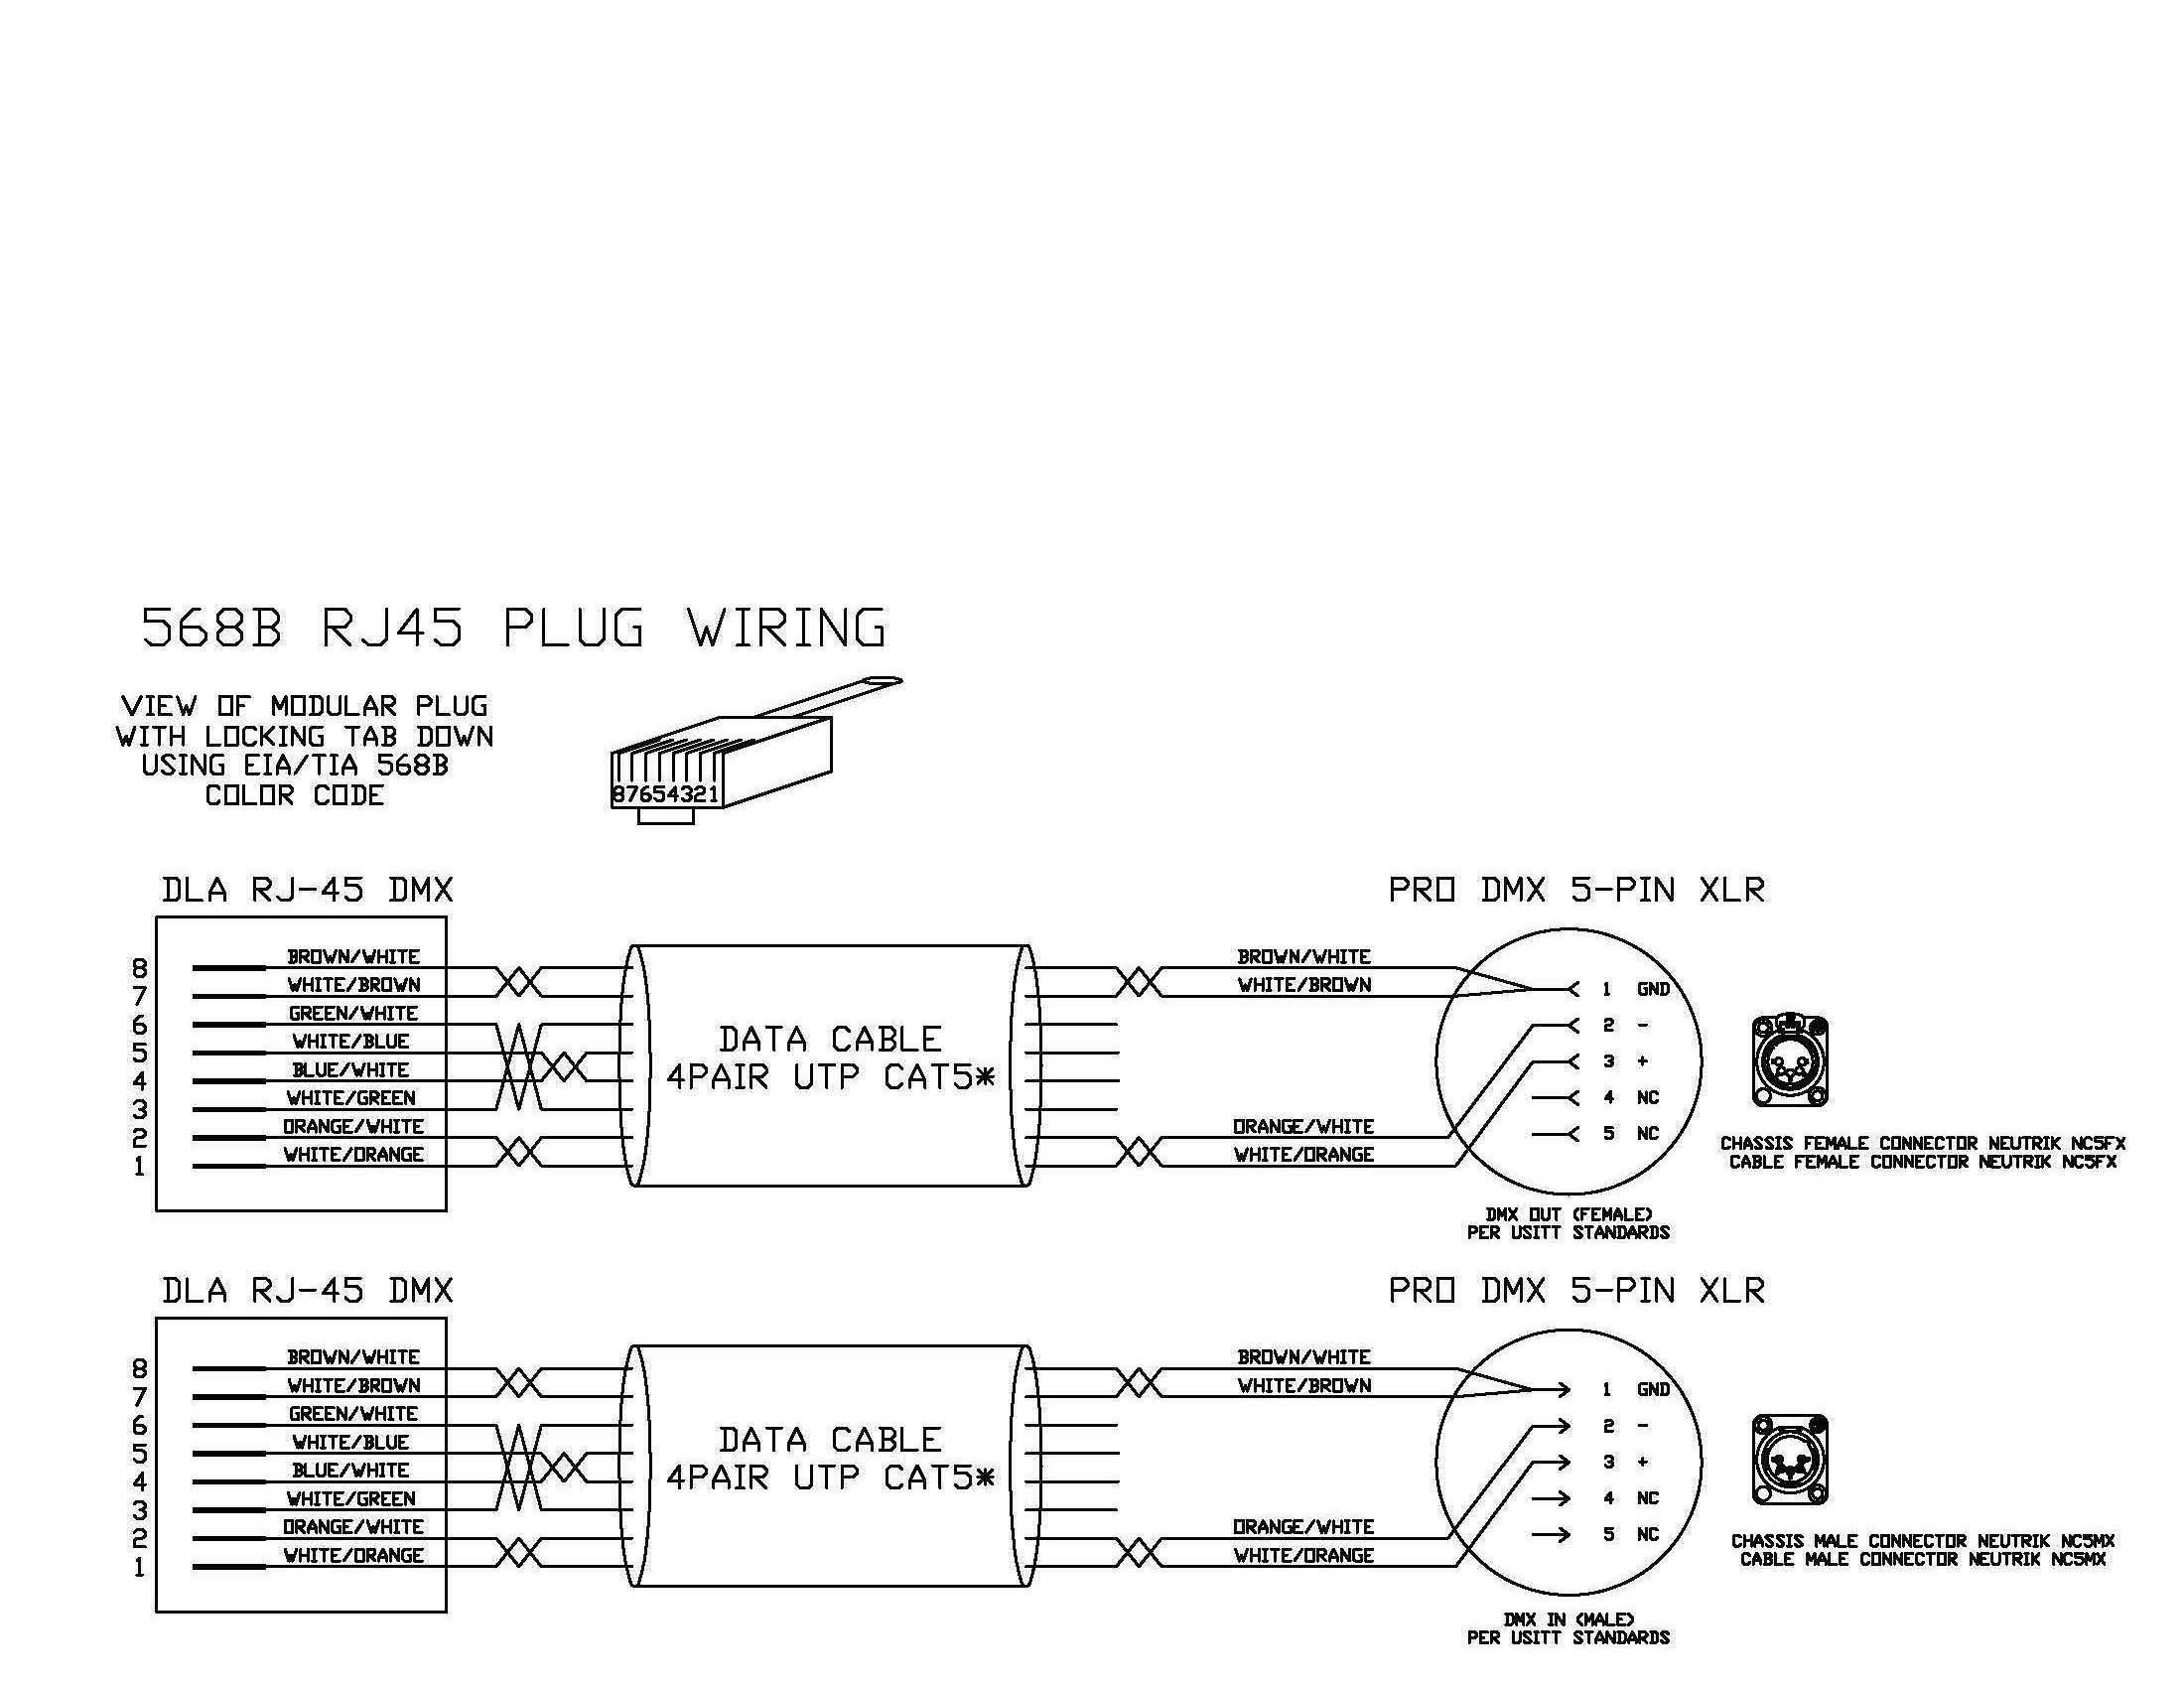 e975ddb6a839e630c21b81db05ca4fa6 xlr to rj45 wiring diagram xlr electrical wiring diagrams xlr wiring color codes at edmiracle.co